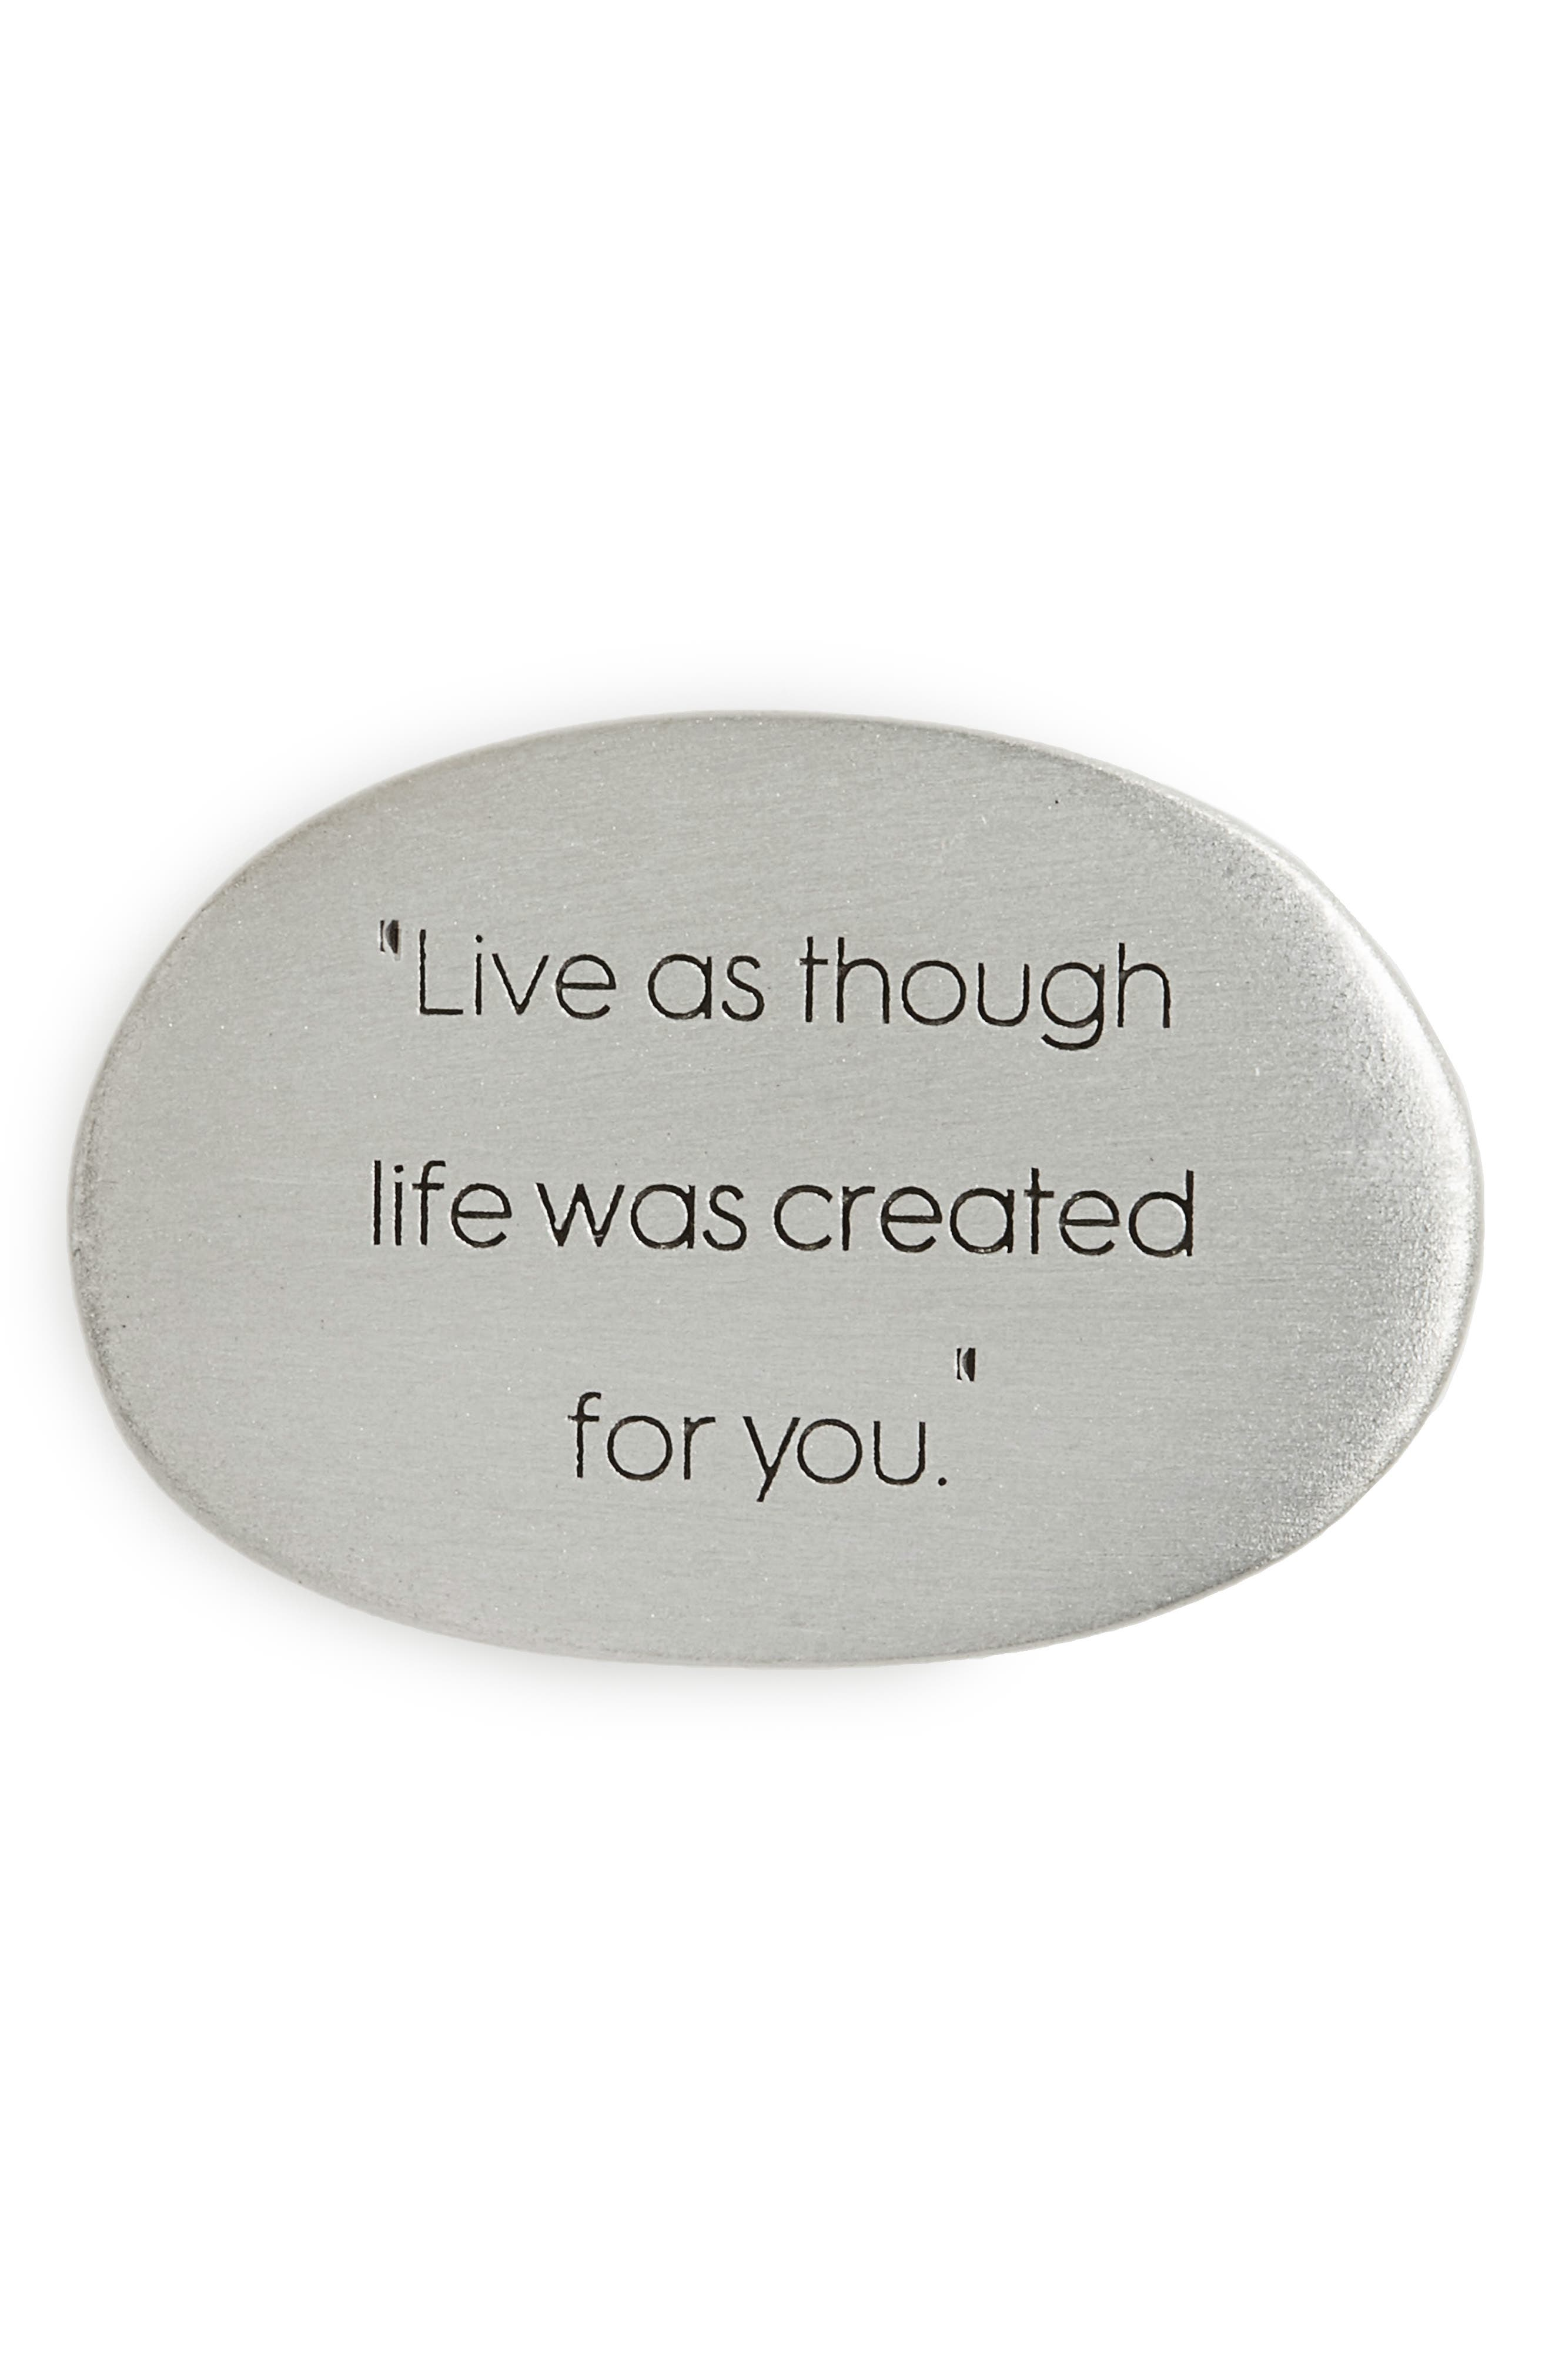 Legacy Live as Though Pocket Stone,                             Main thumbnail 1, color,                             Silver